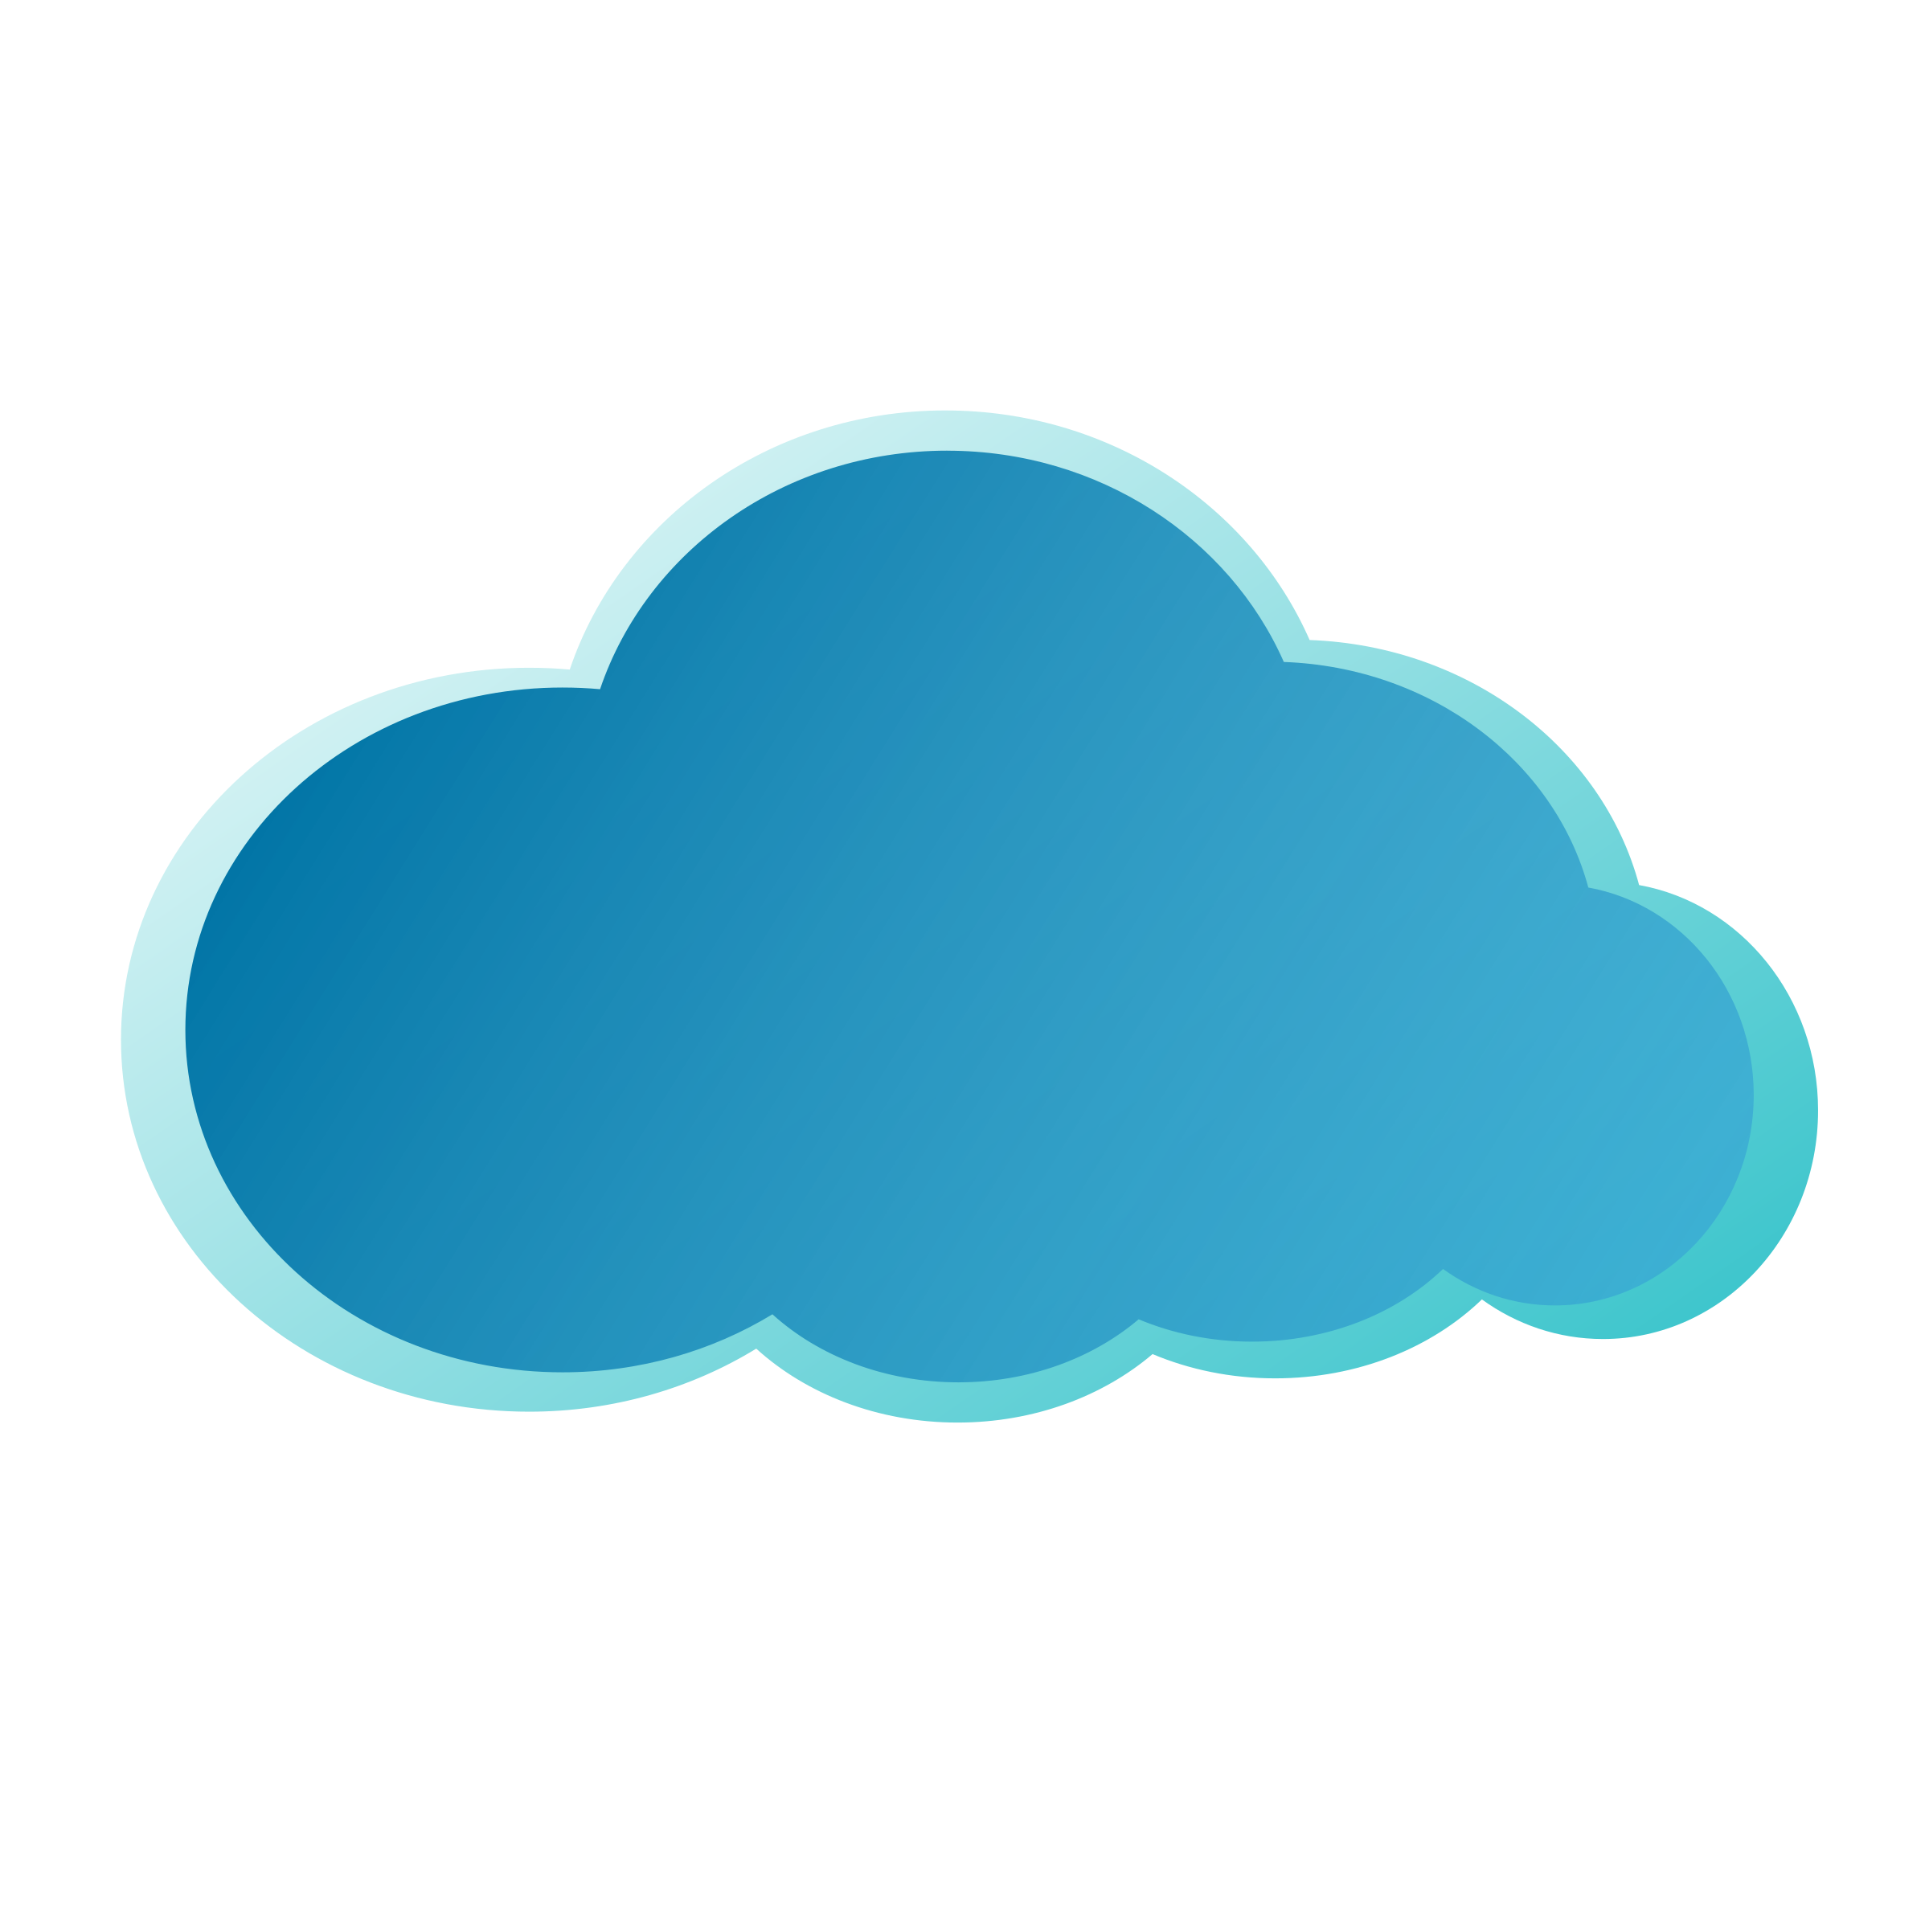 Nubes vector png. Nube azul icons free